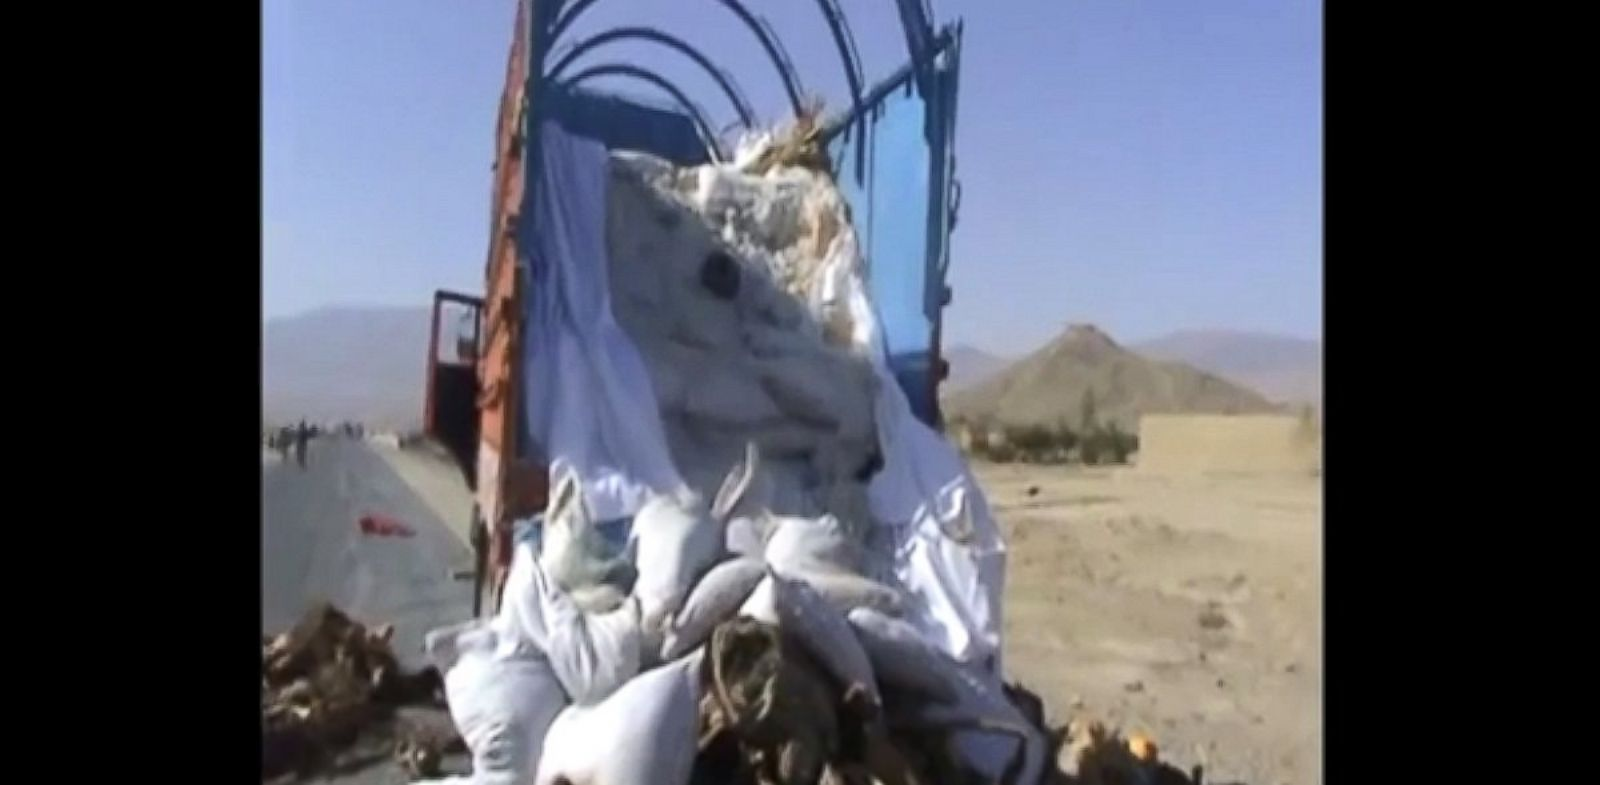 PHOTO: Security forces in Afghanistan released a short video of what American experts and analysts say is one of the biggest truck bombs ever discovered.